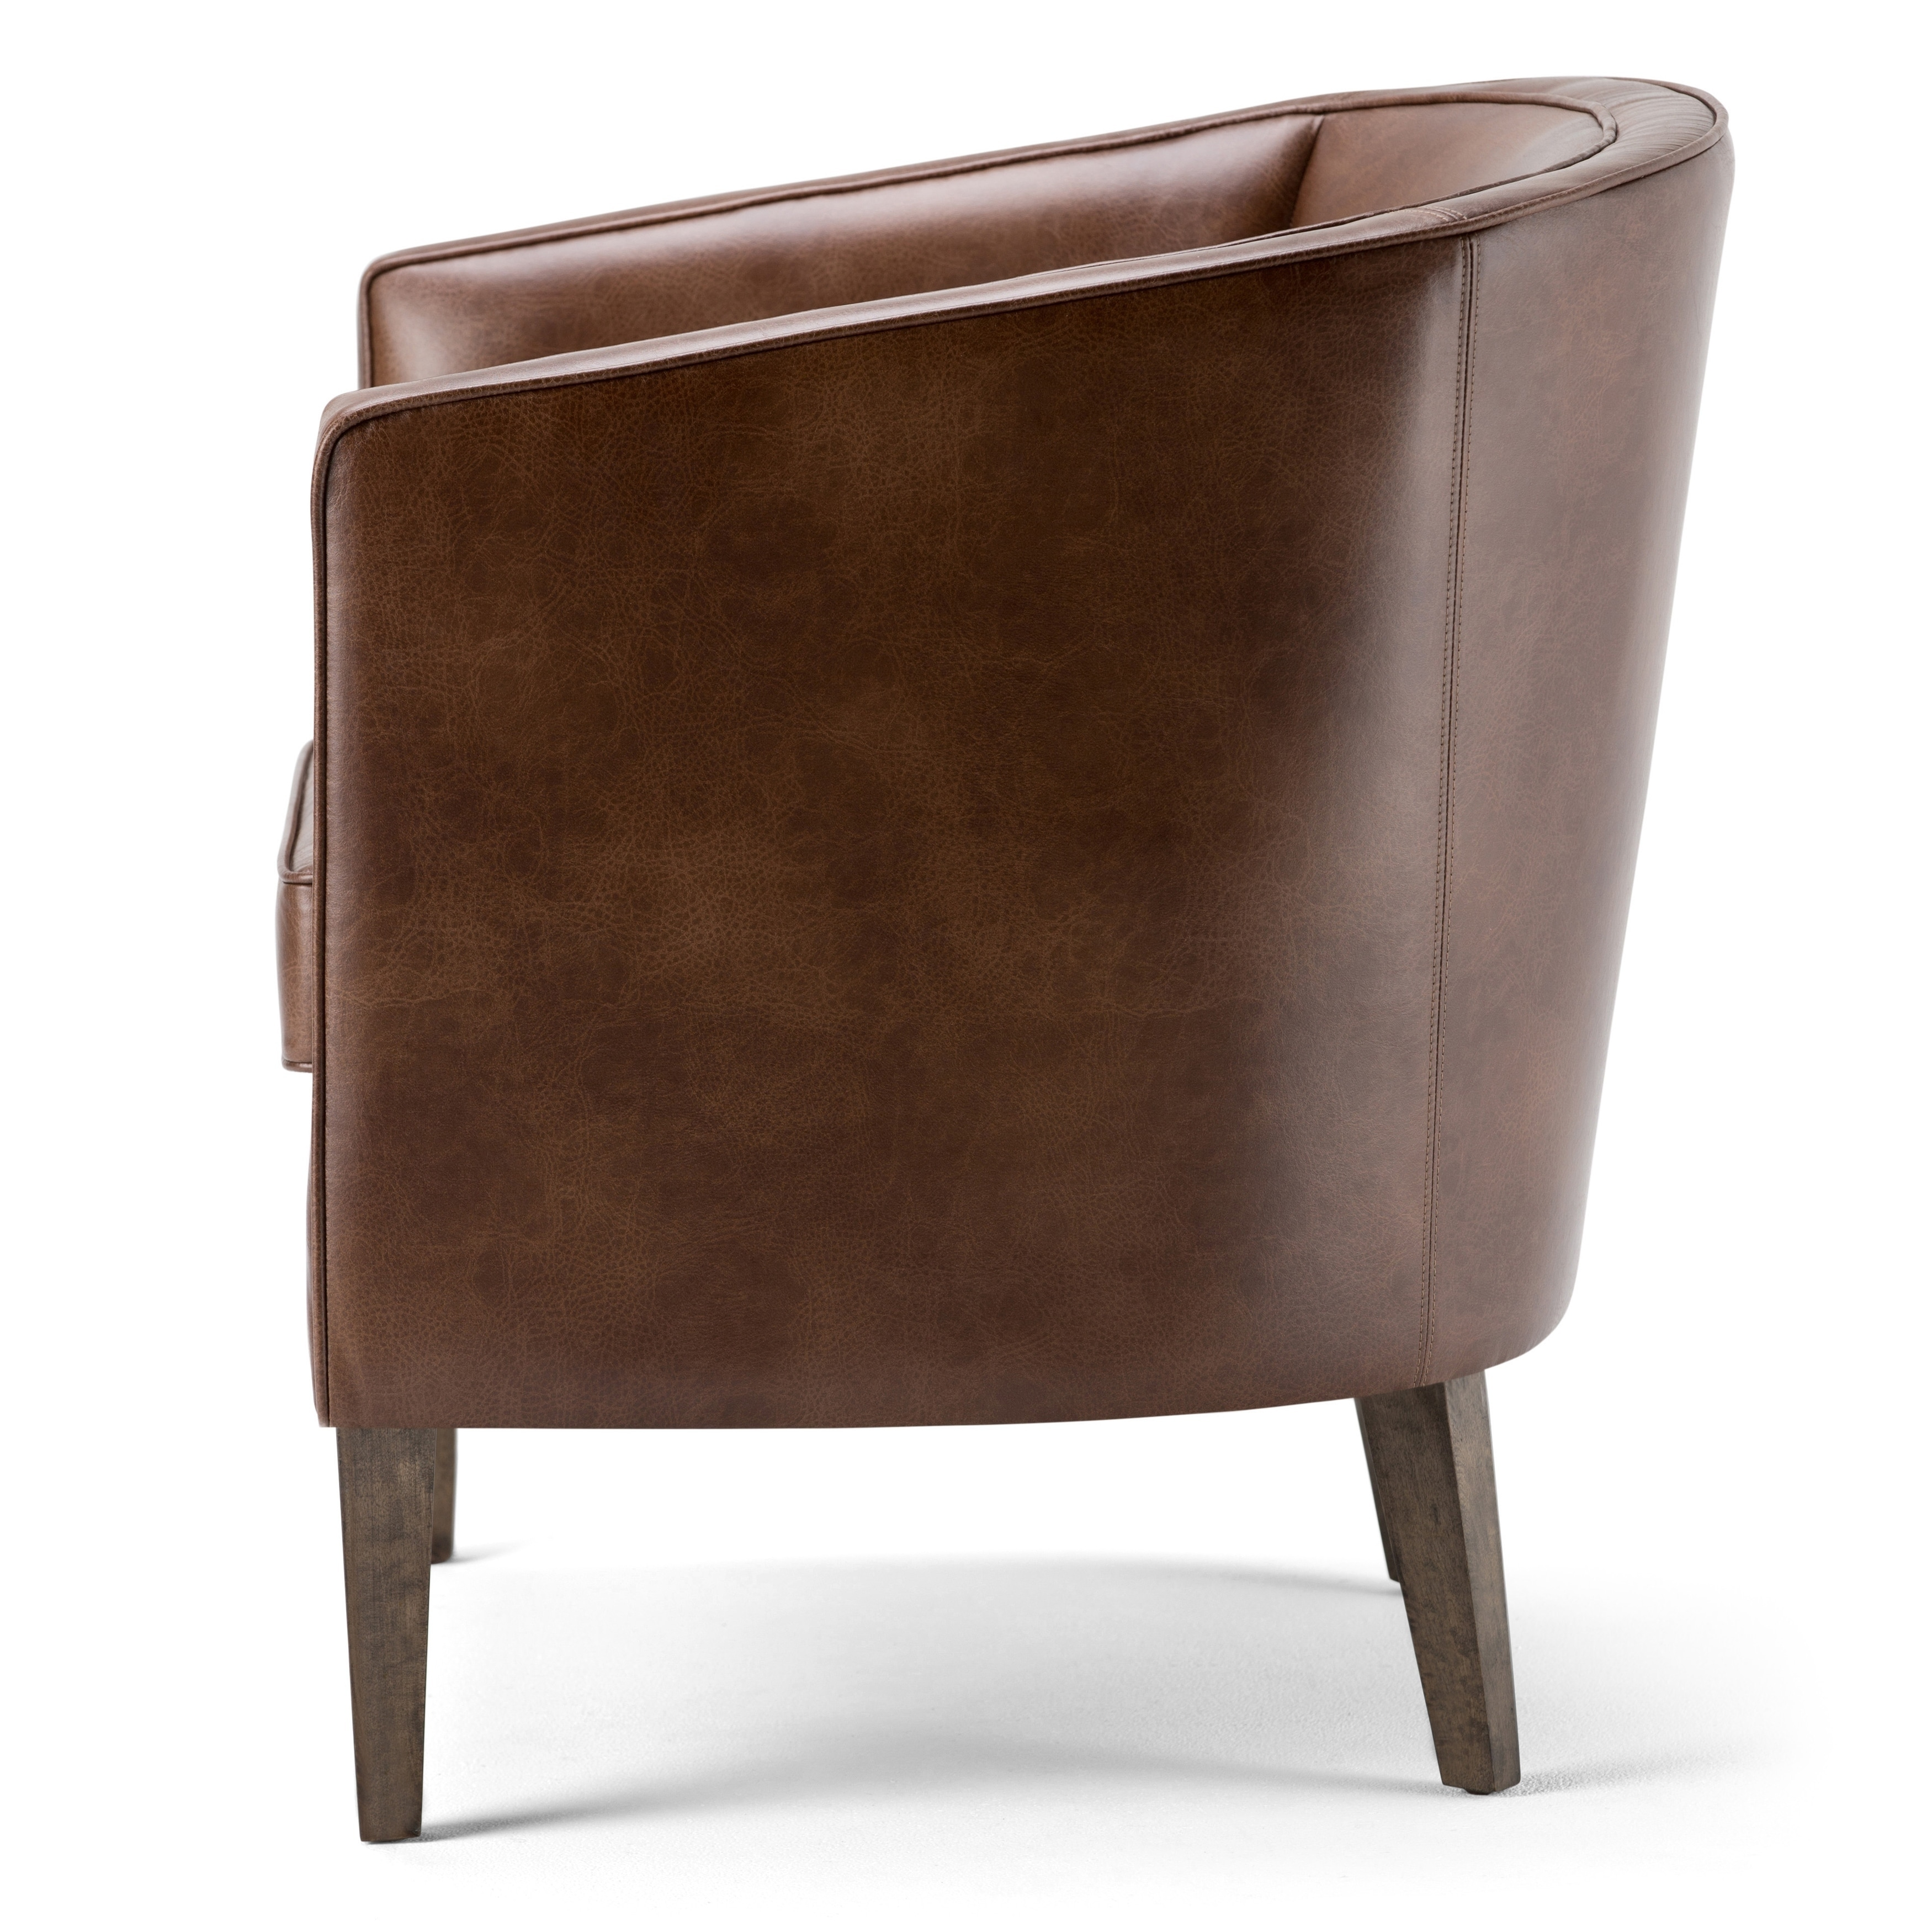 Wyndenhall Walker 31 Inch Wide Contemporary Tub Chair In Distressed Brown Bonded Leather Free Shipping Today 12331900